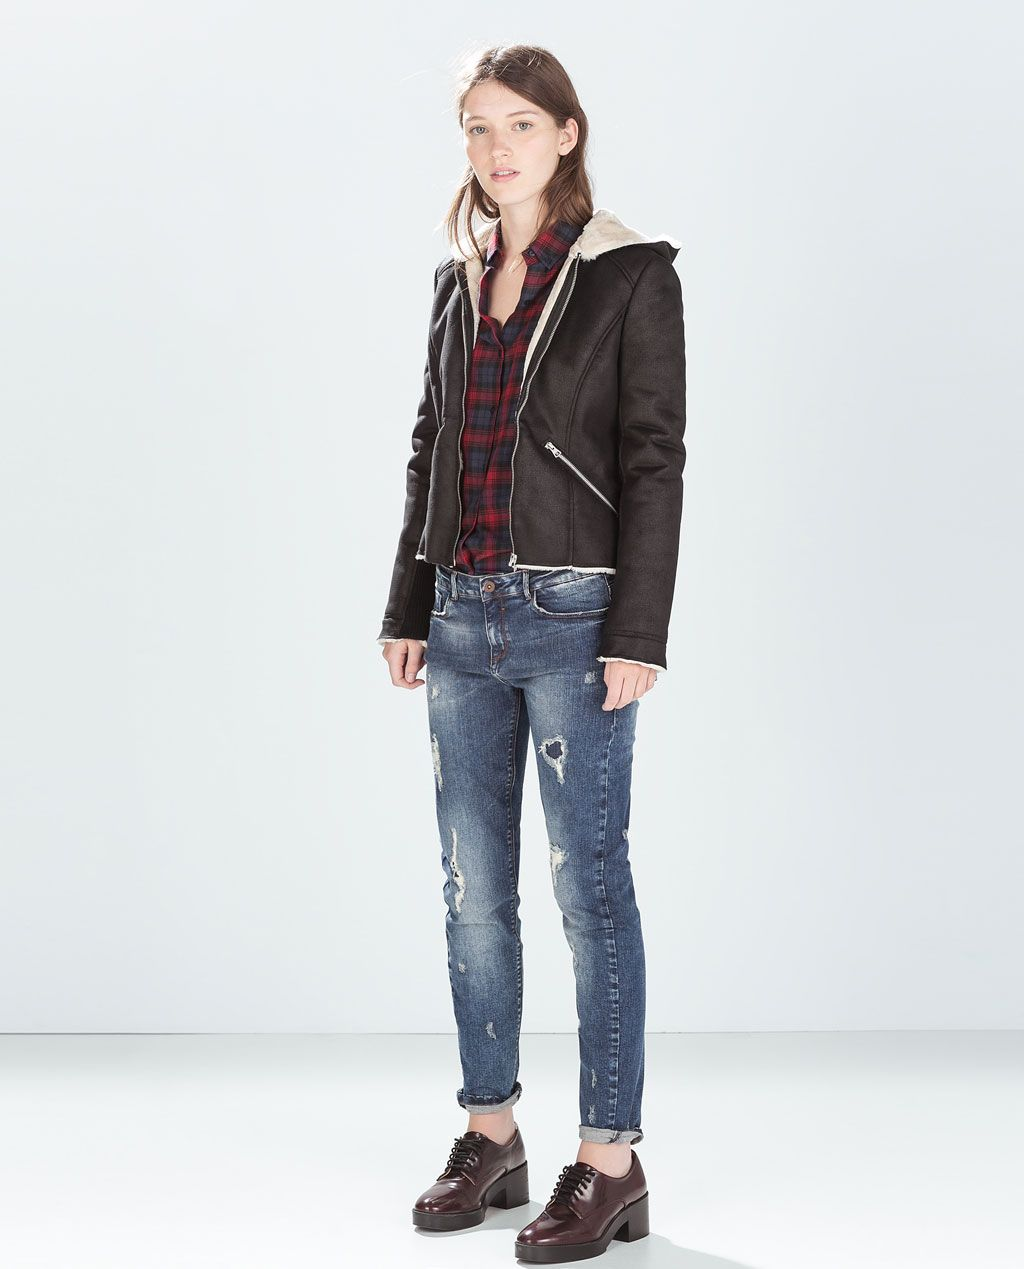 Catalogo Zara Zara New This Week Cigarette Jeans Fall 14 Otoño Invierno